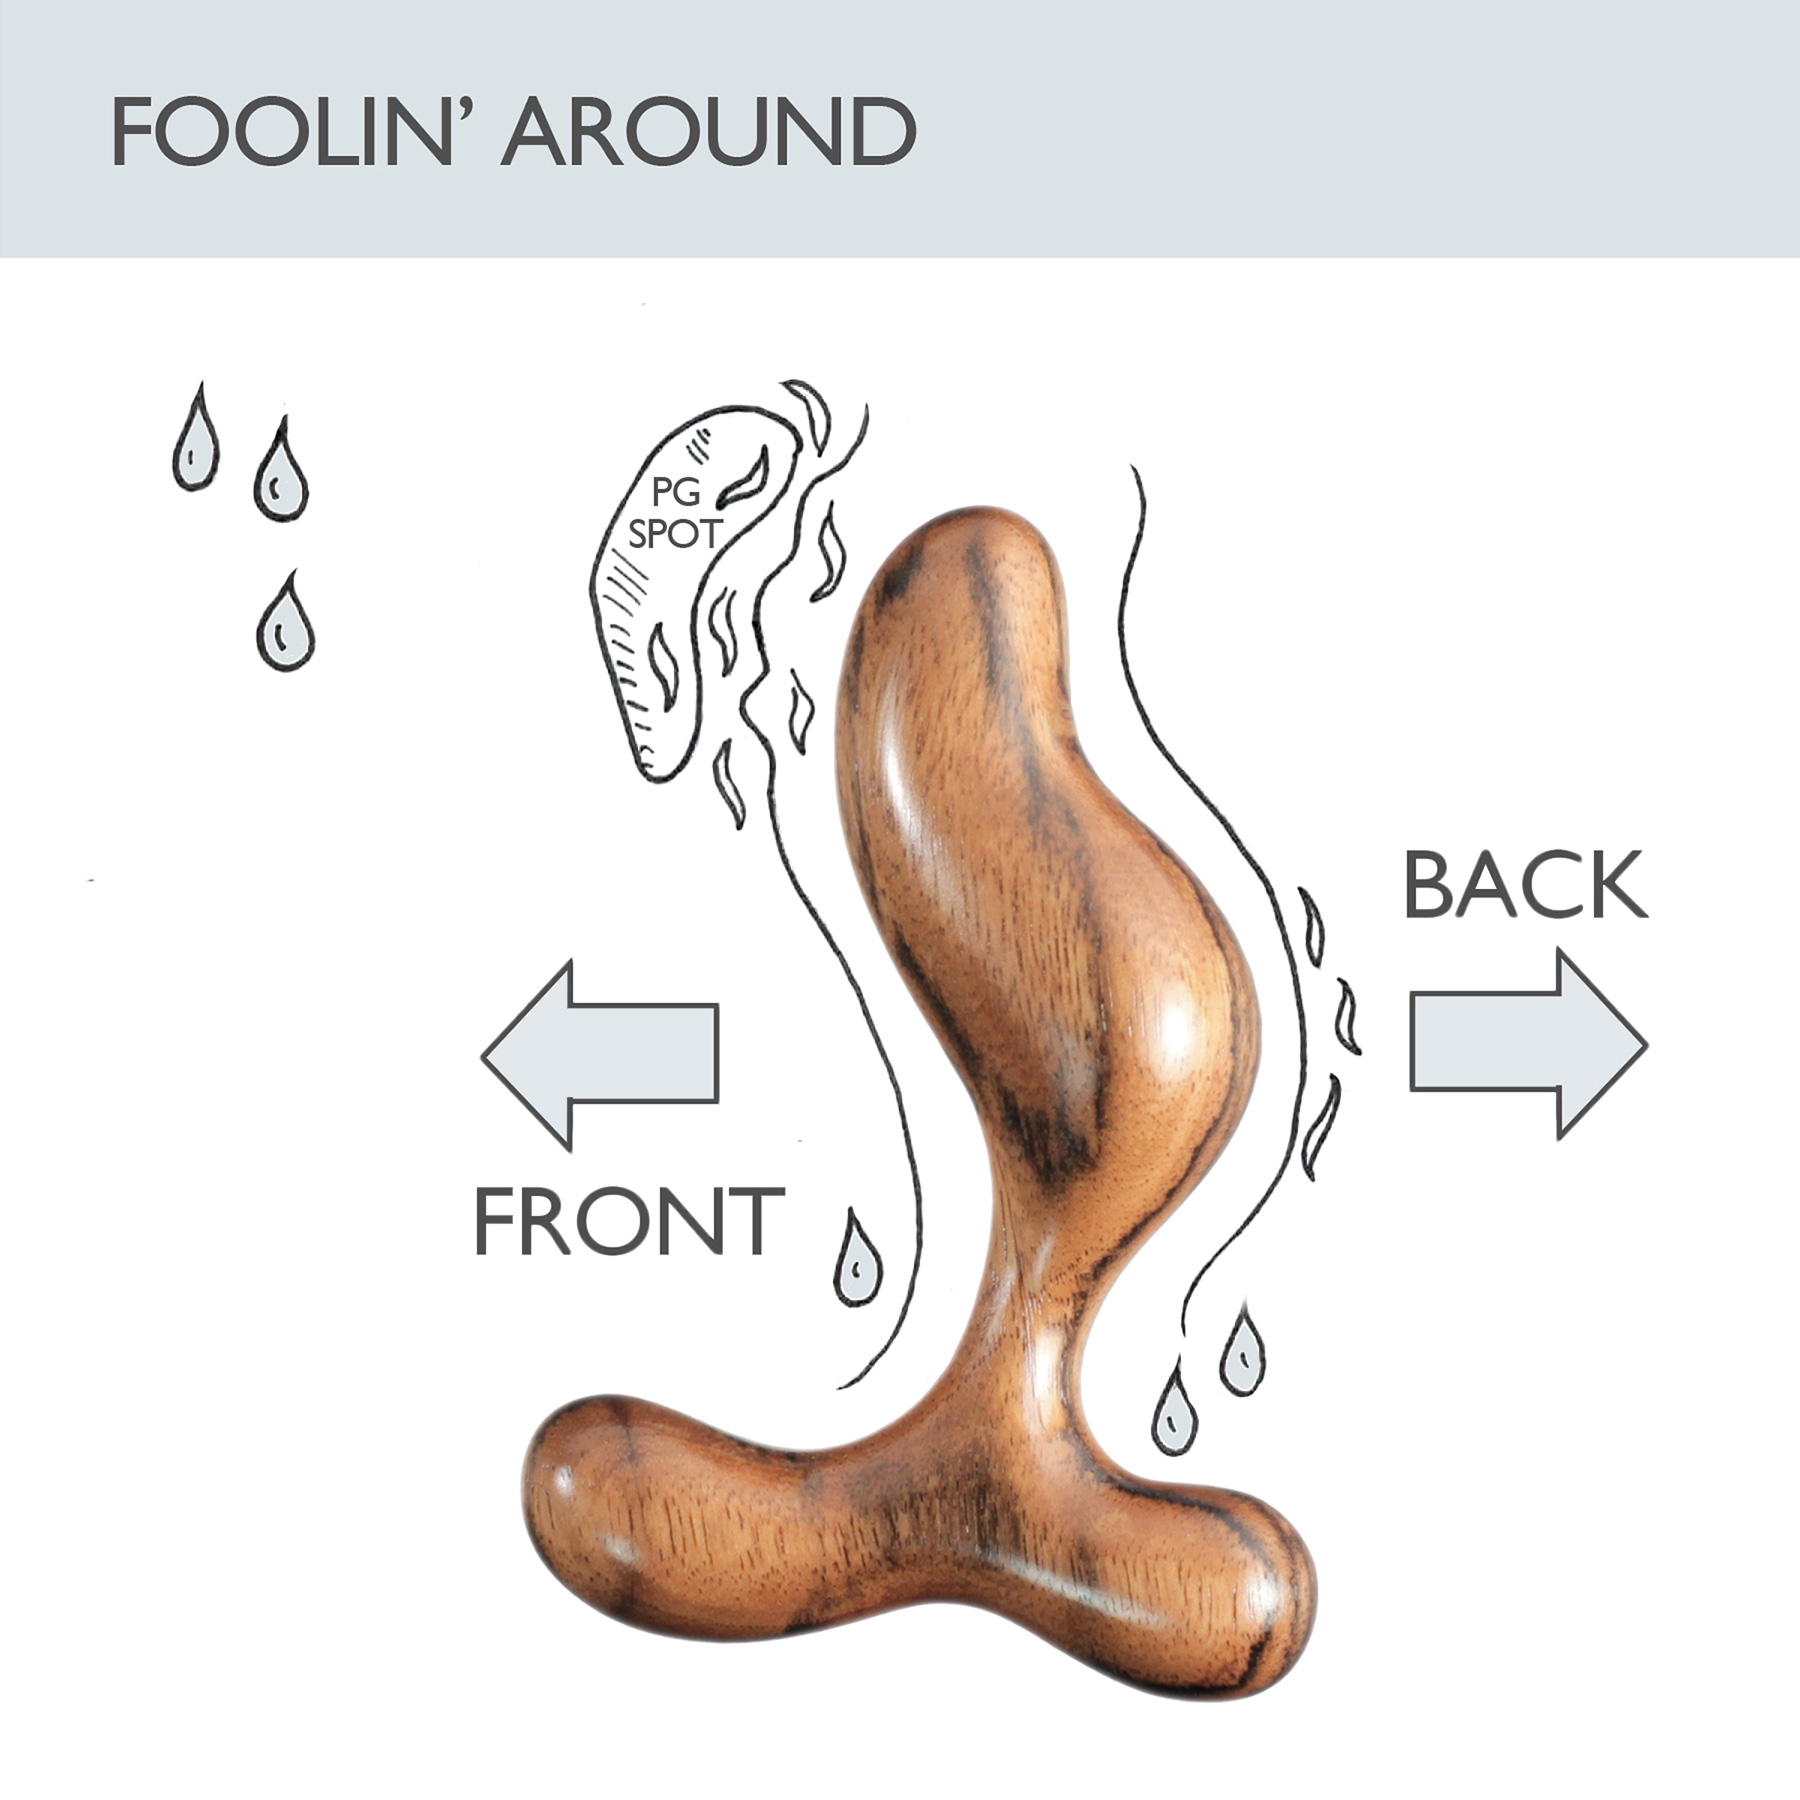 NobEssence Romp 2.0 Sculptured Hardwood Prostate Massager - Foolin' Around